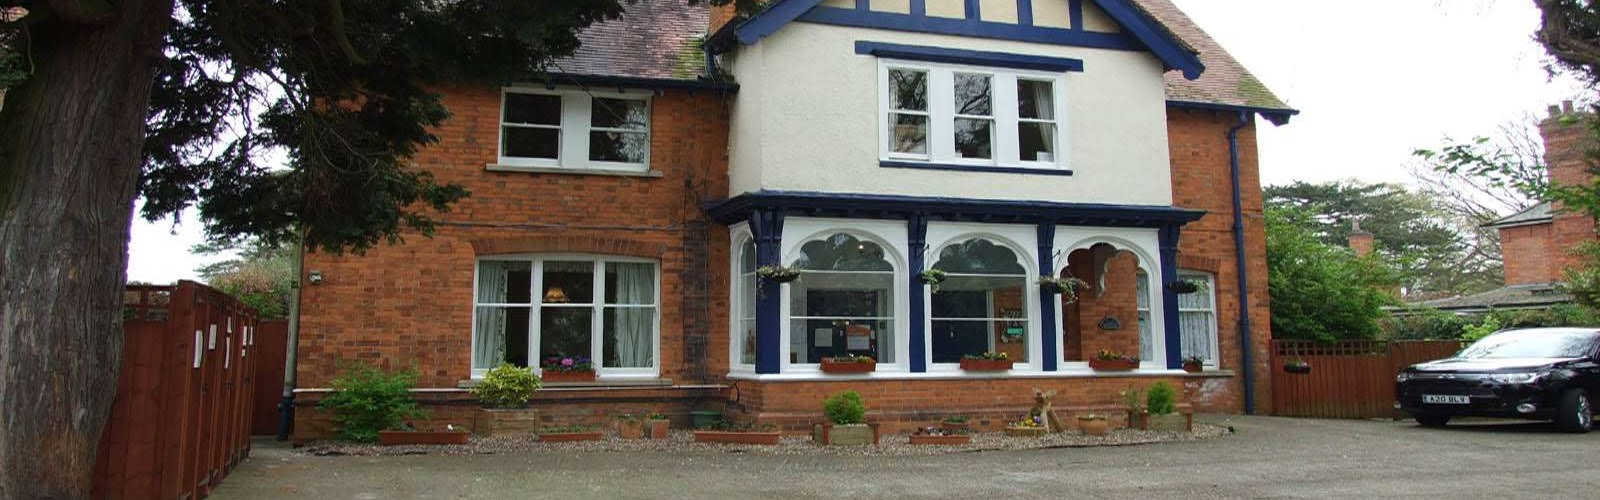 Lincolnshire Elderly Care Home